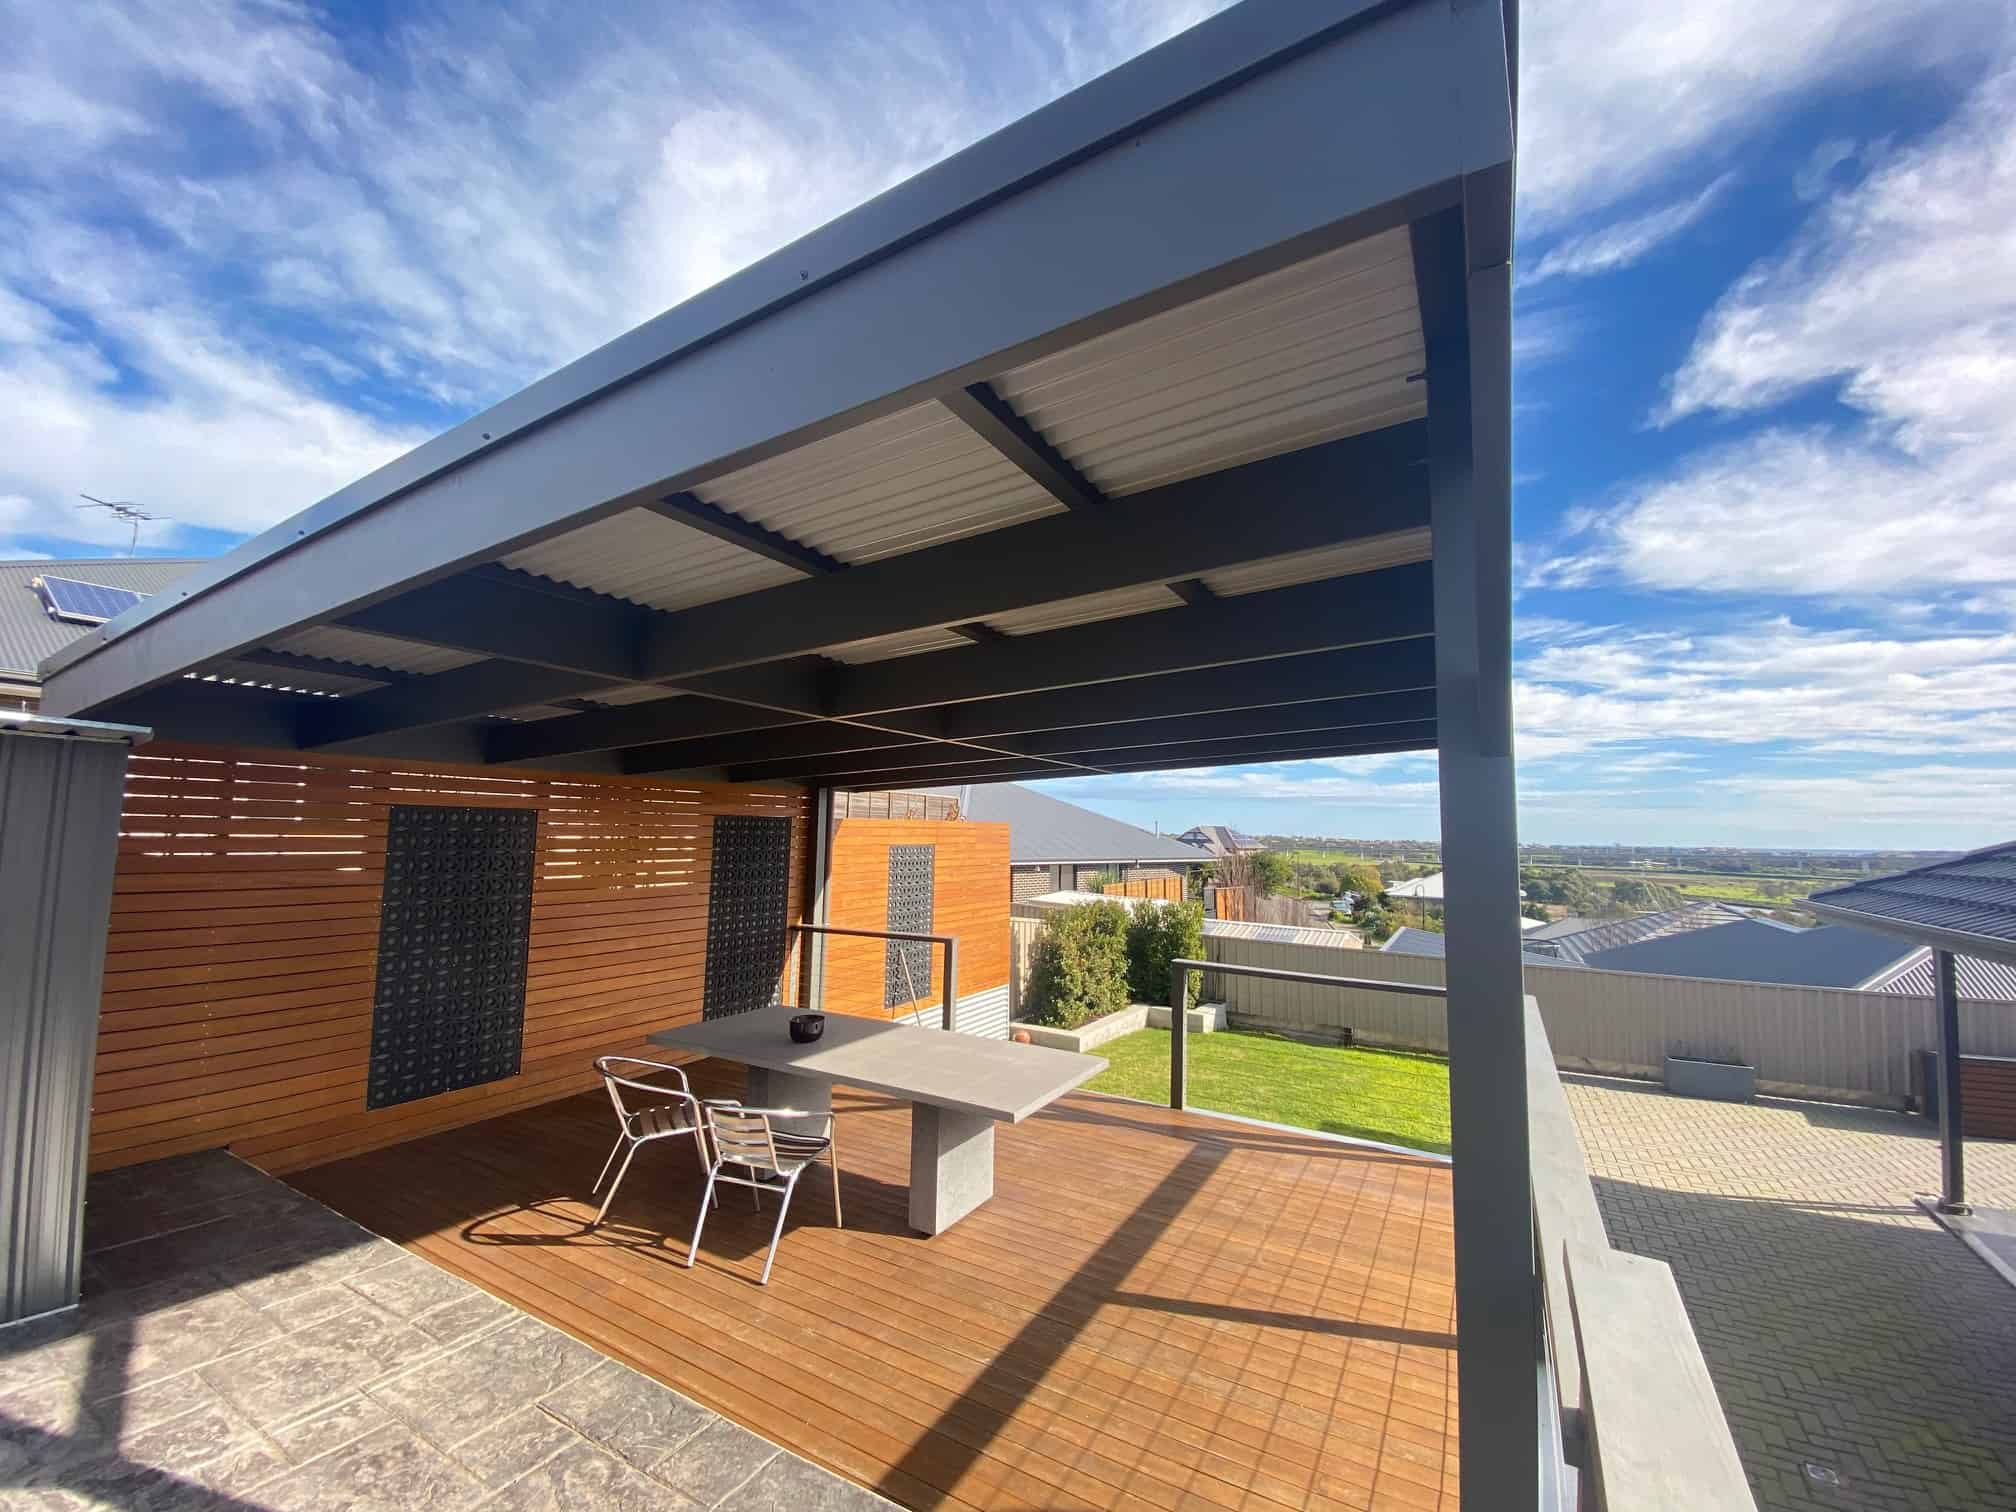 Timber Verandahs | MyLiving Outdoors on Myliving Outdoors  id=58837